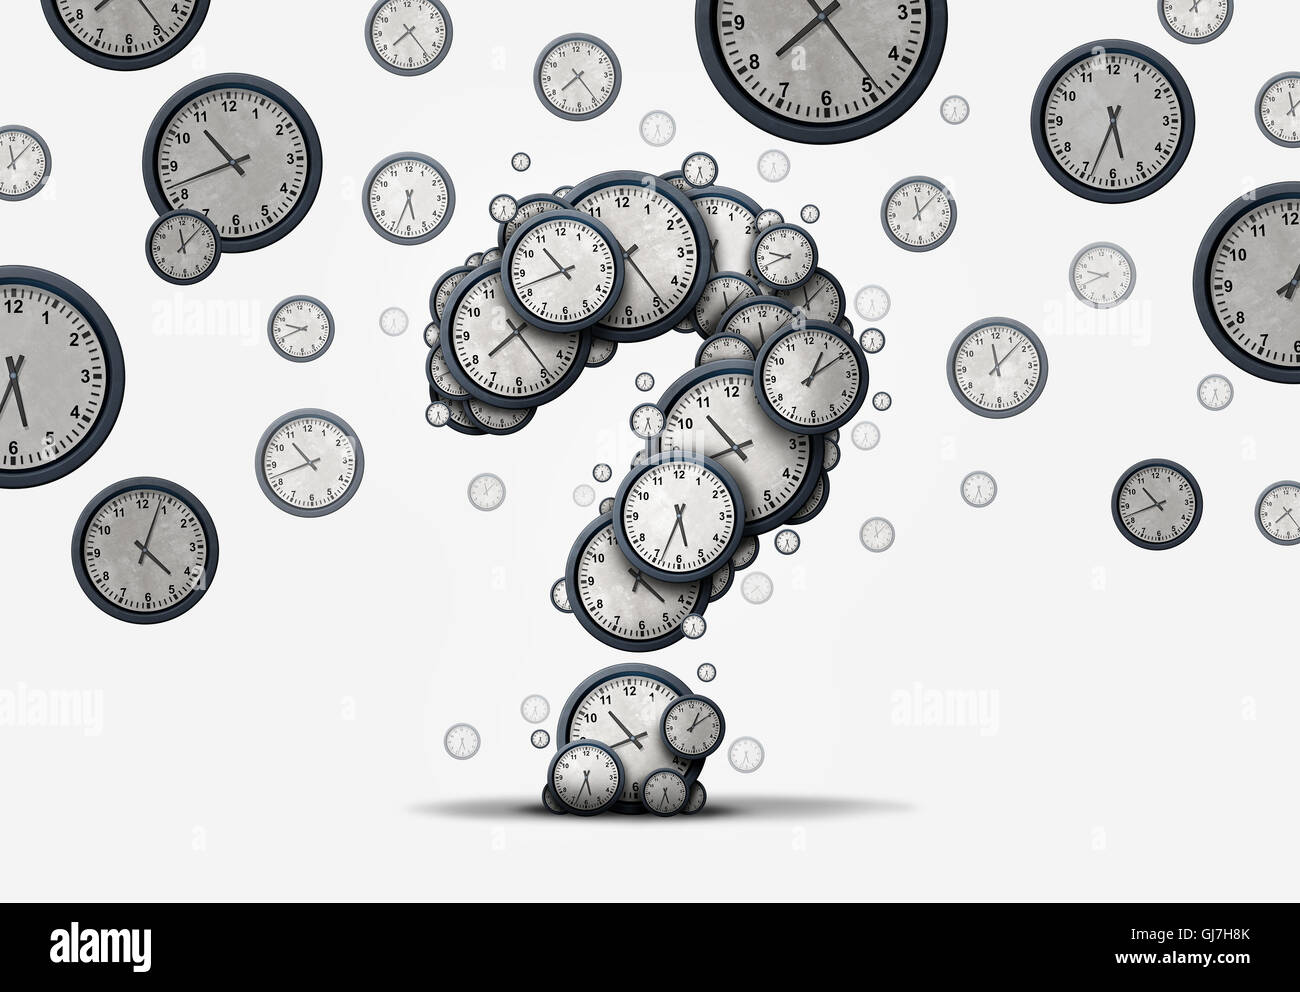 Time questions concept as a group of floating clocks and timepieces shaped as a question mark as a metaphor for - Stock Image